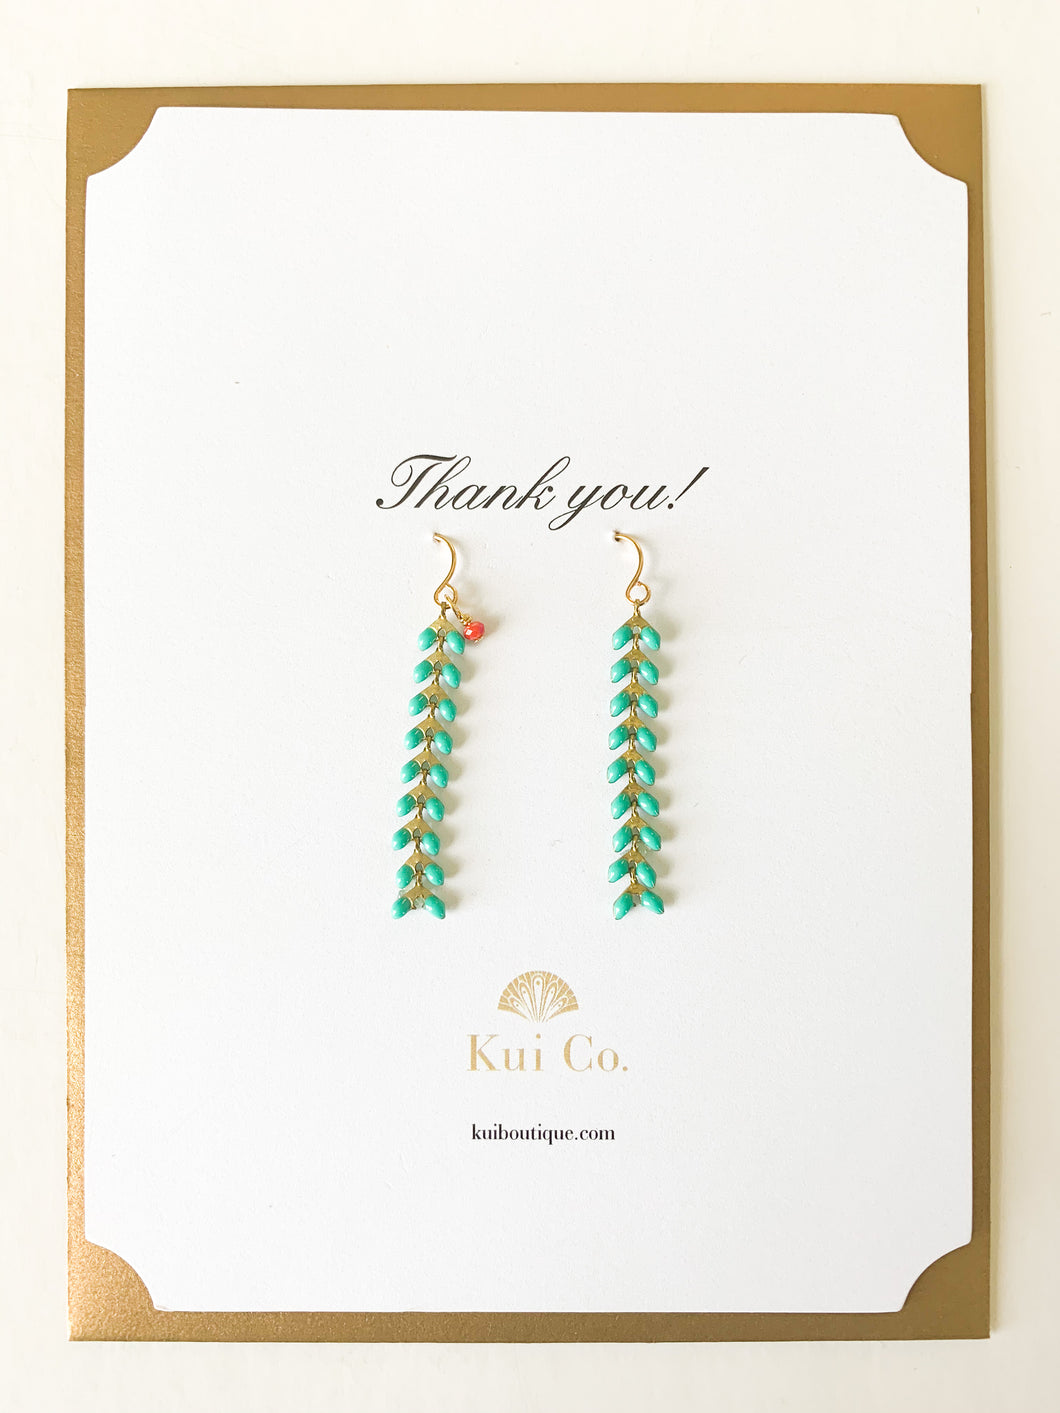 Shop this pair of Aqua Chevron Drop Earrings and Thank You greeting card and others at FederalandBlack.com